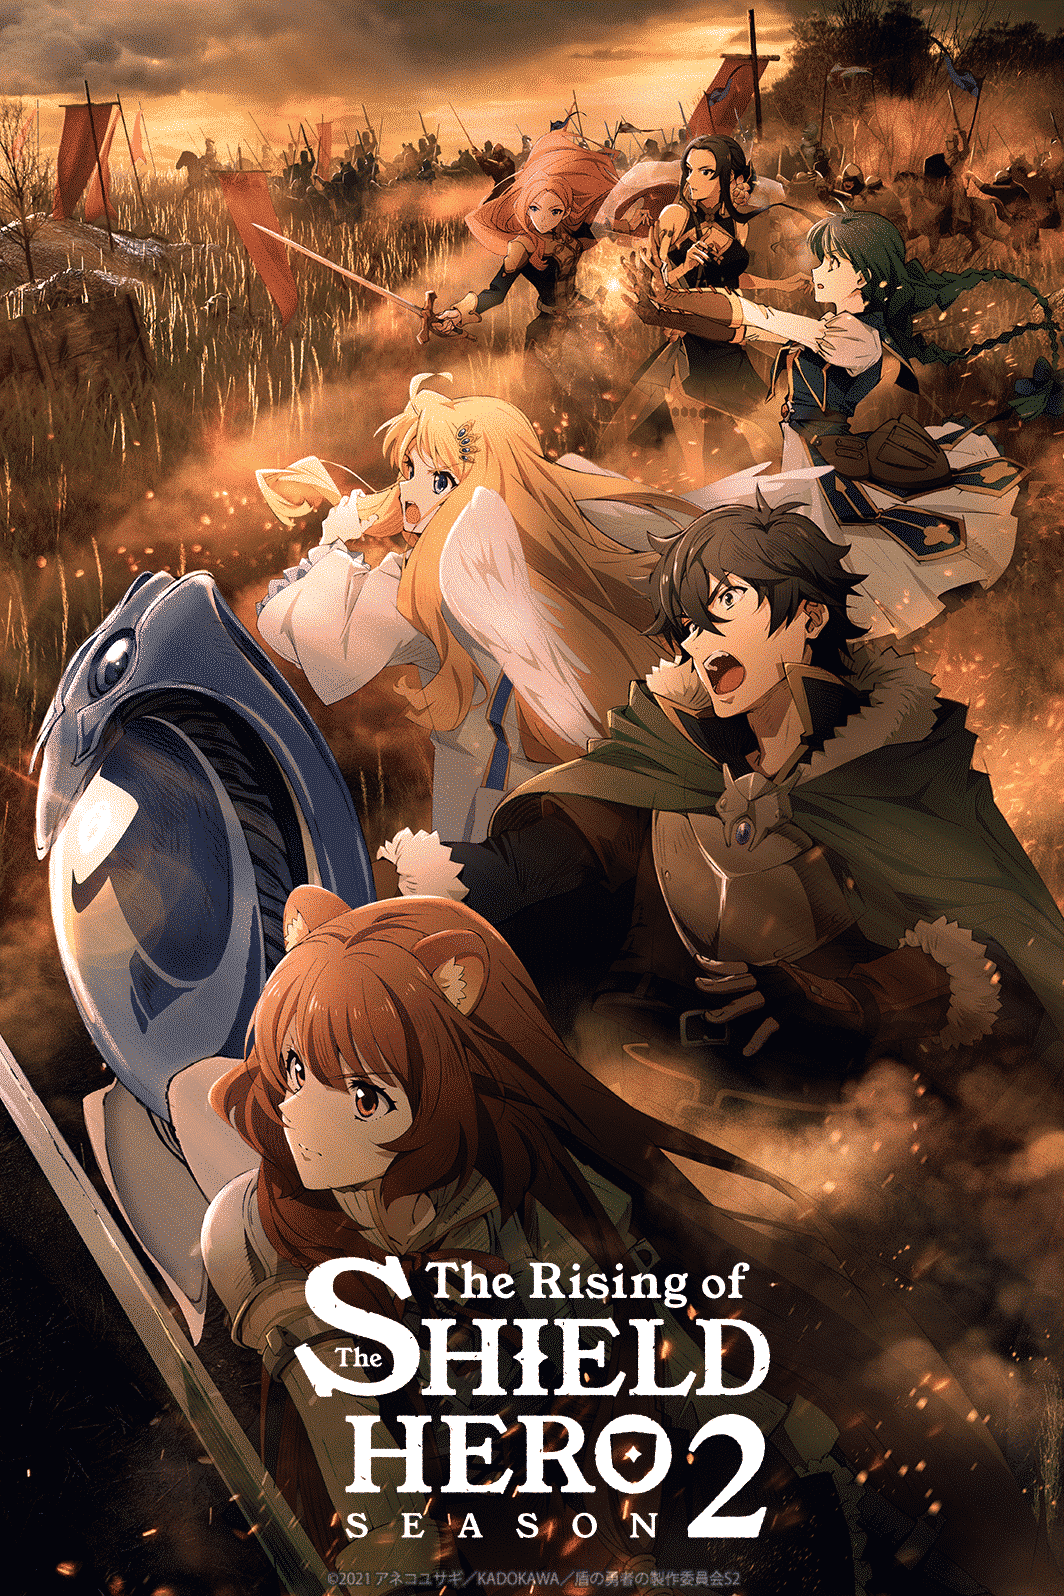 La deuxième saison de The Rising of the Shield Hero arrive en octobre 2